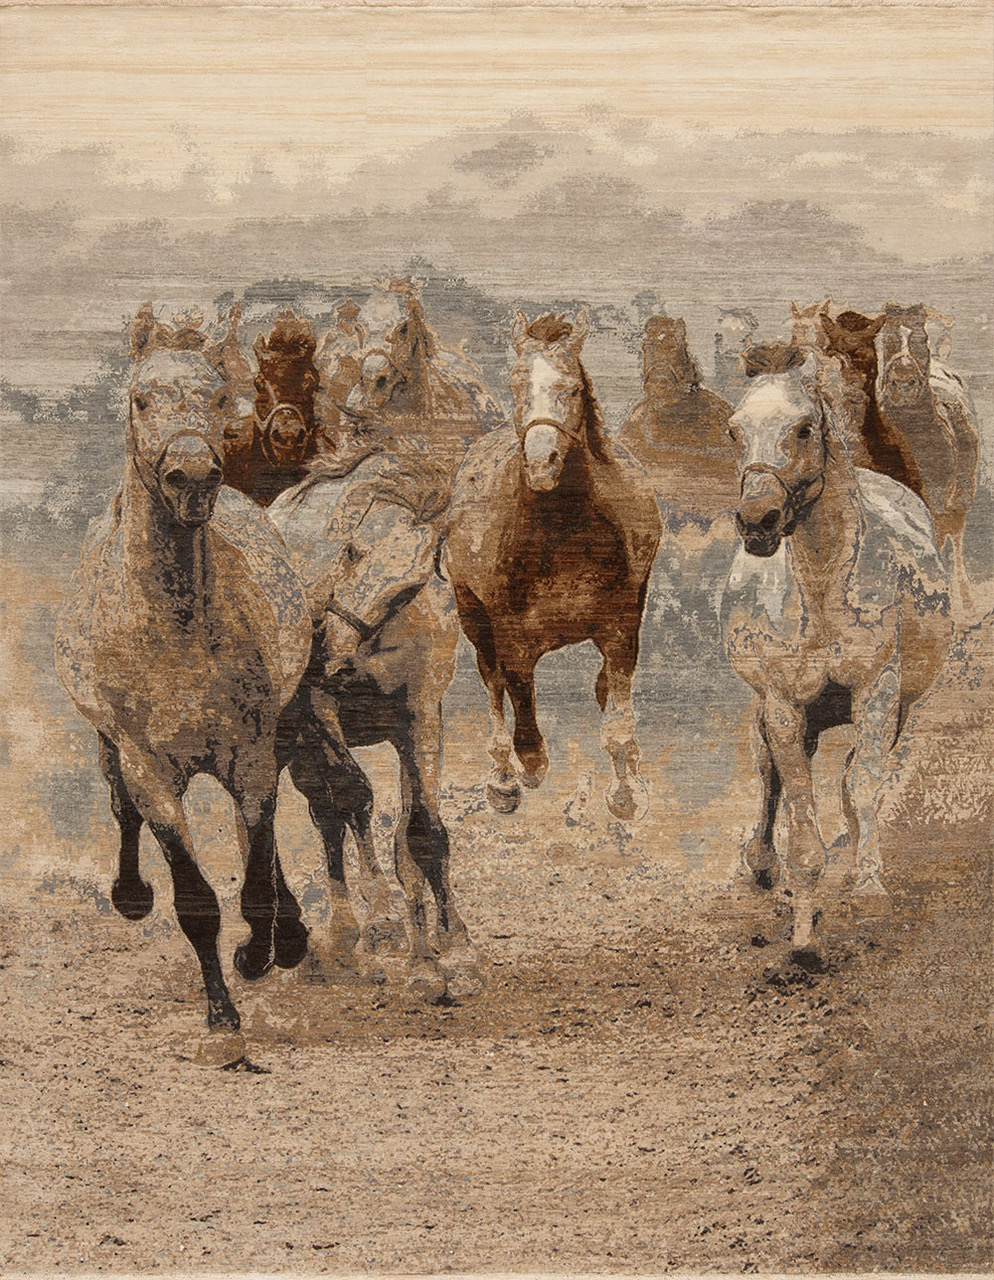 153263-animal-kingdom-wild-horses-8-0-x-10-1